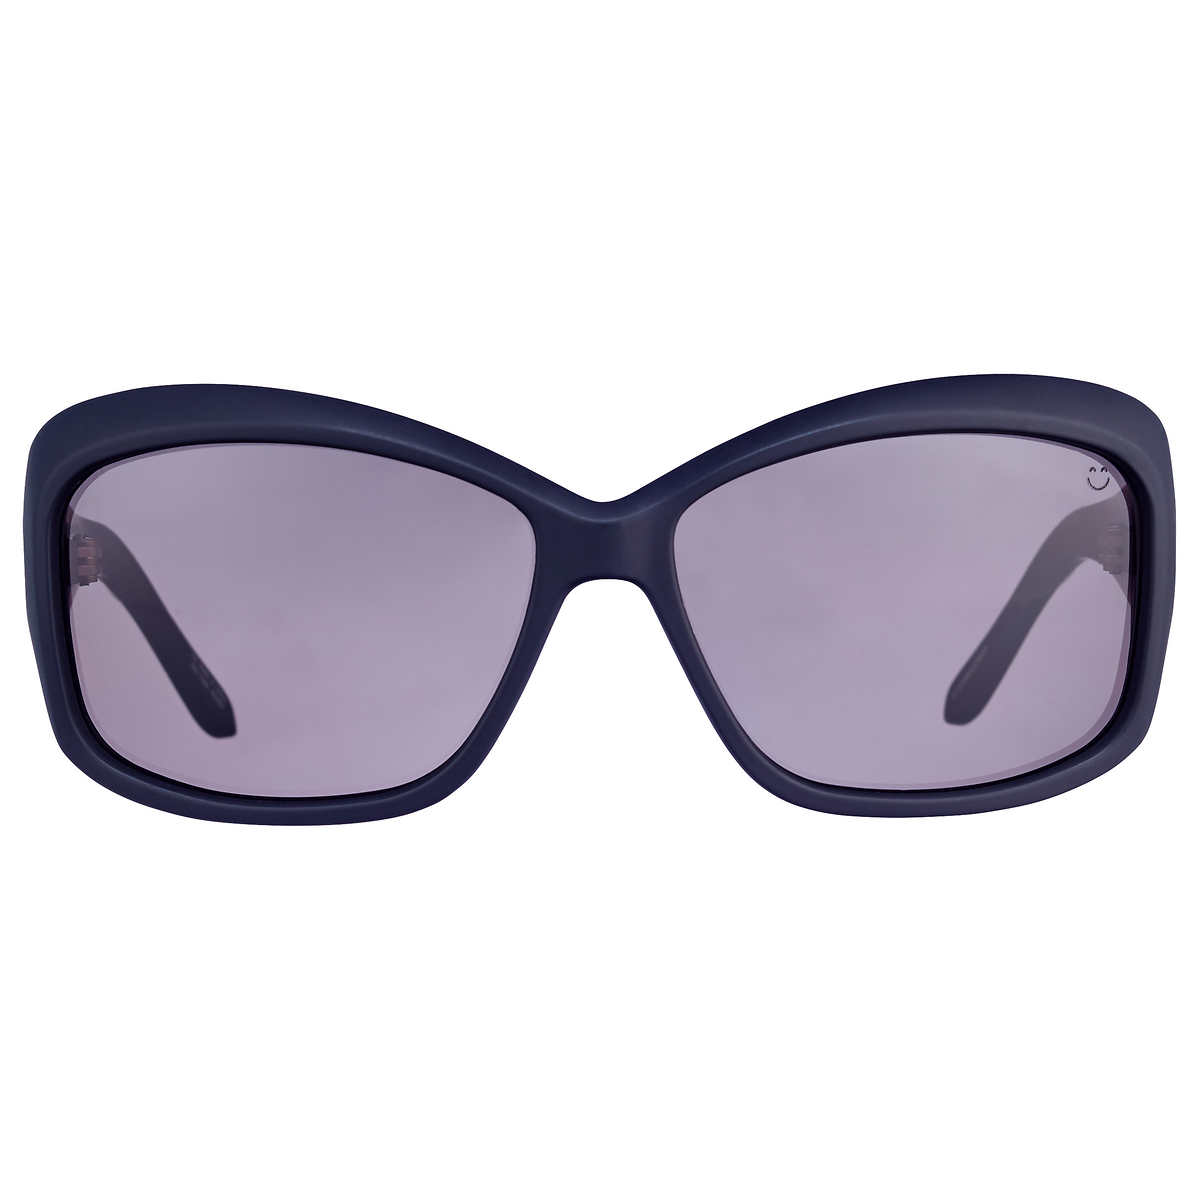 957a66067ef SPY - Spy Winnie Matte Black Polarized Sunglasses - Walmart.com